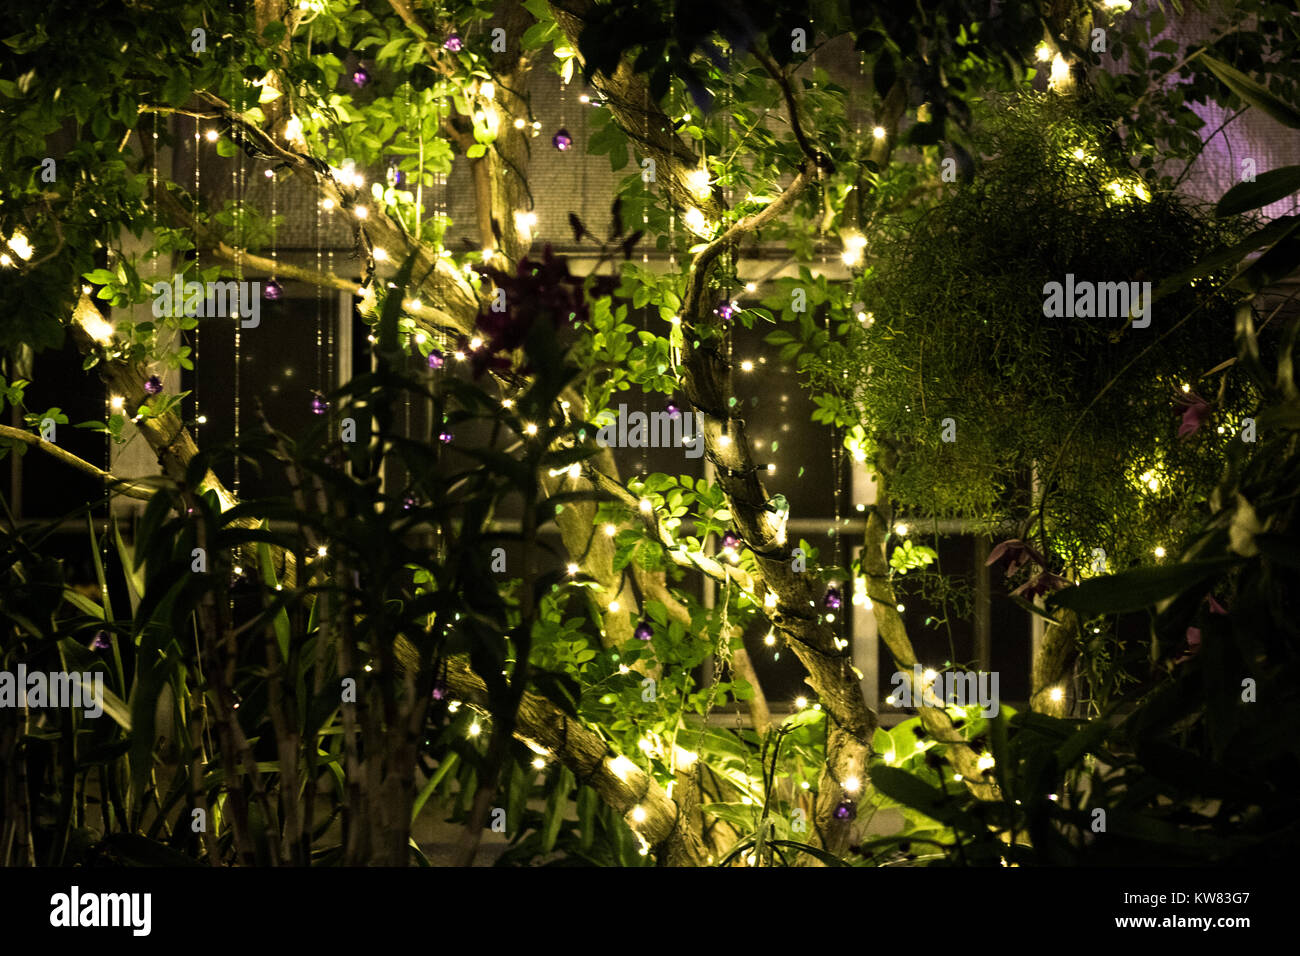 Magical Fairy Tale Garden with Lights - Stock Image